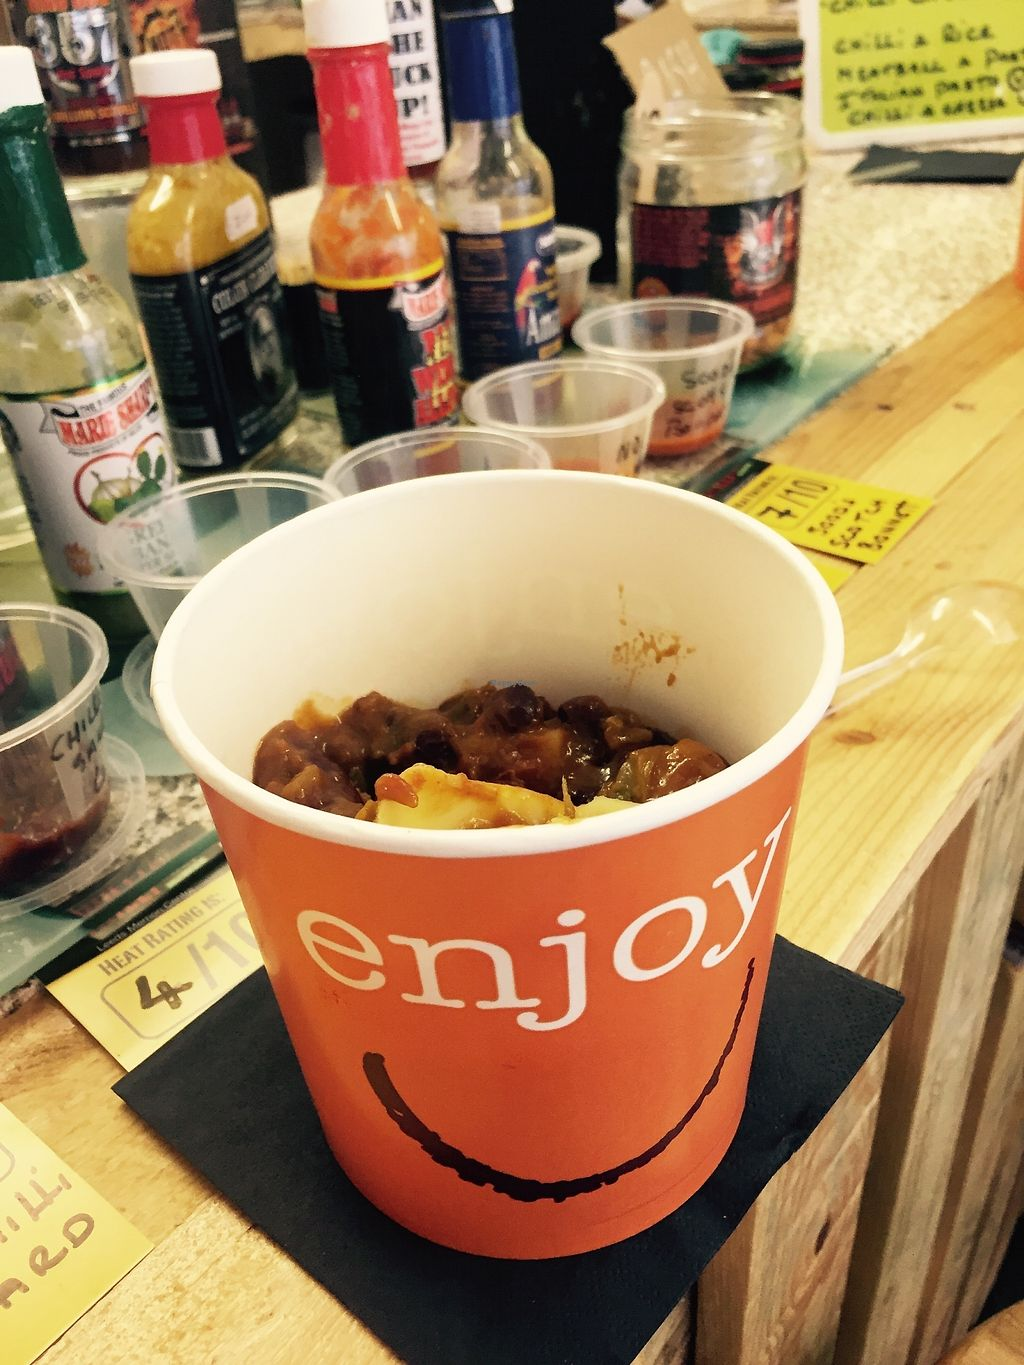 """Photo of Chelle's Pantry  by <a href=""""/members/profile/TARAMCDONALD"""">TARAMCDONALD</a> <br/>vegan chili and rice pot, or enjoy as a wrap <br/> August 19, 2017  - <a href='/contact/abuse/image/96288/294361'>Report</a>"""